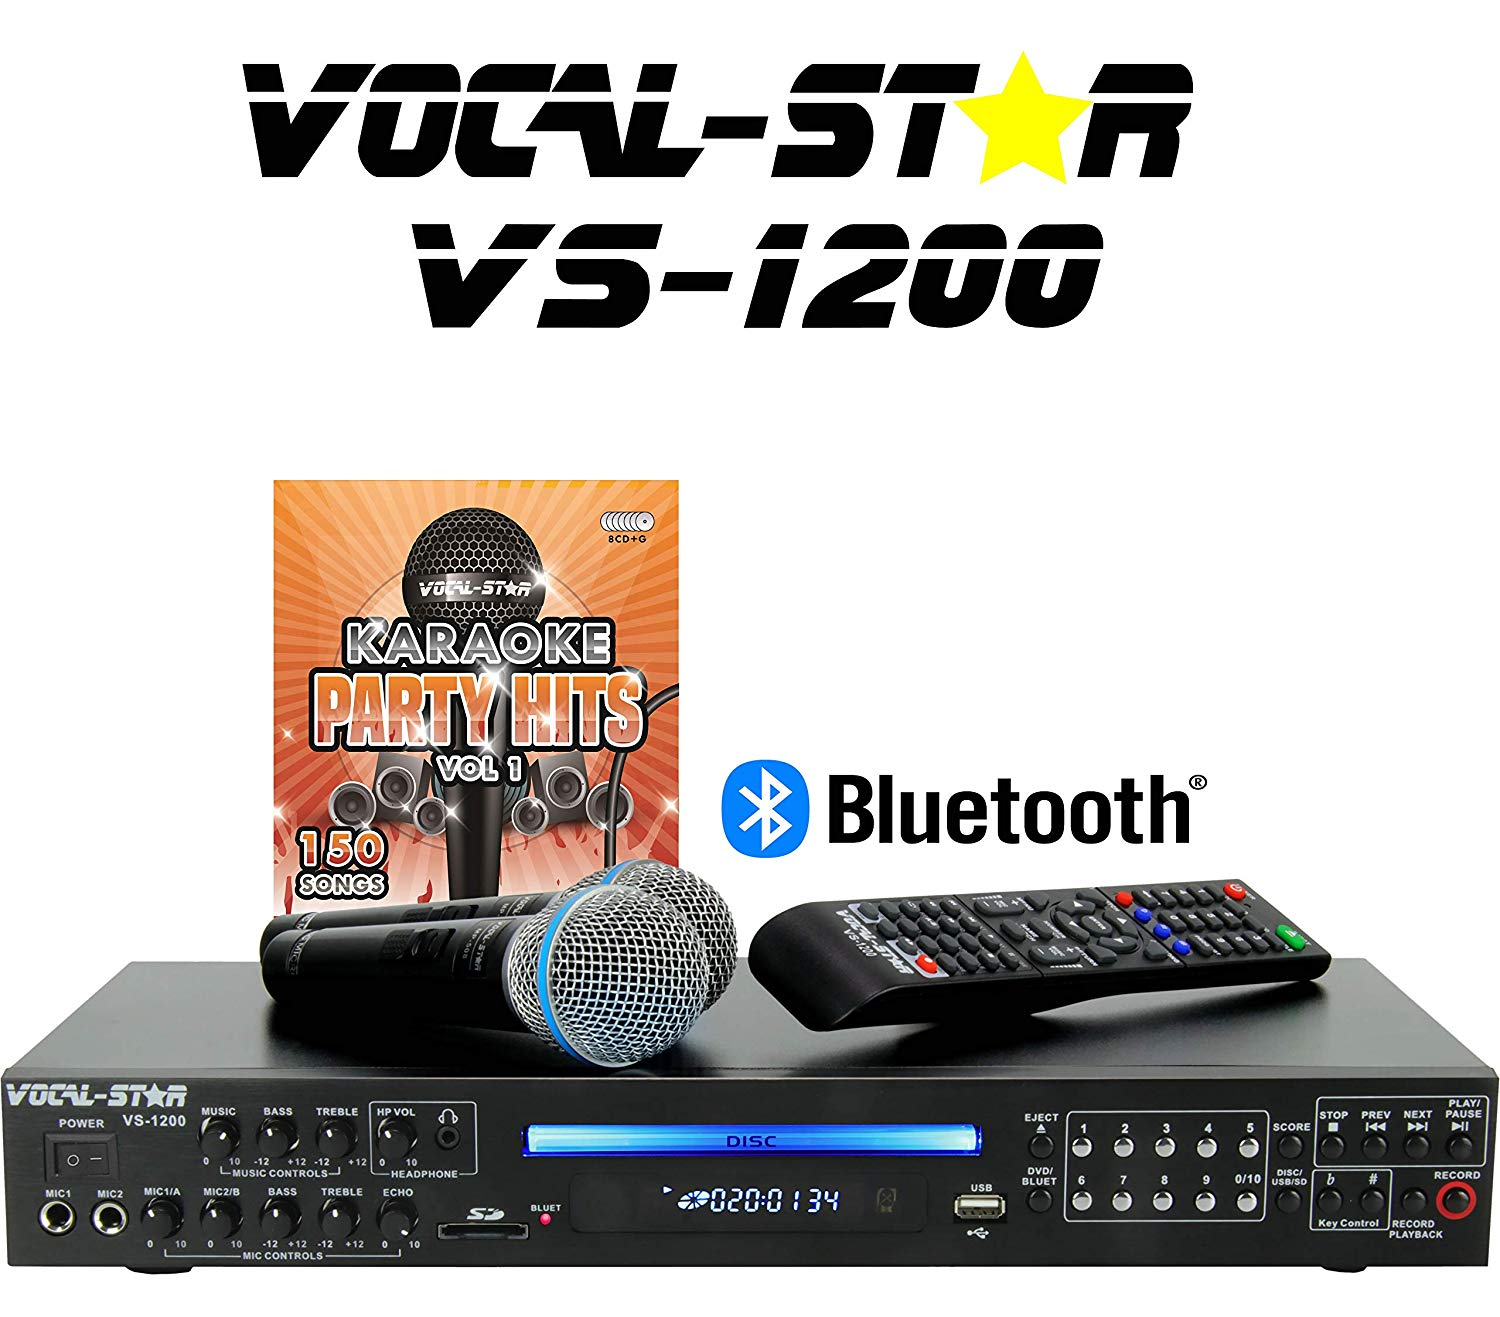 Vocal-Star VS-1200: £144.99